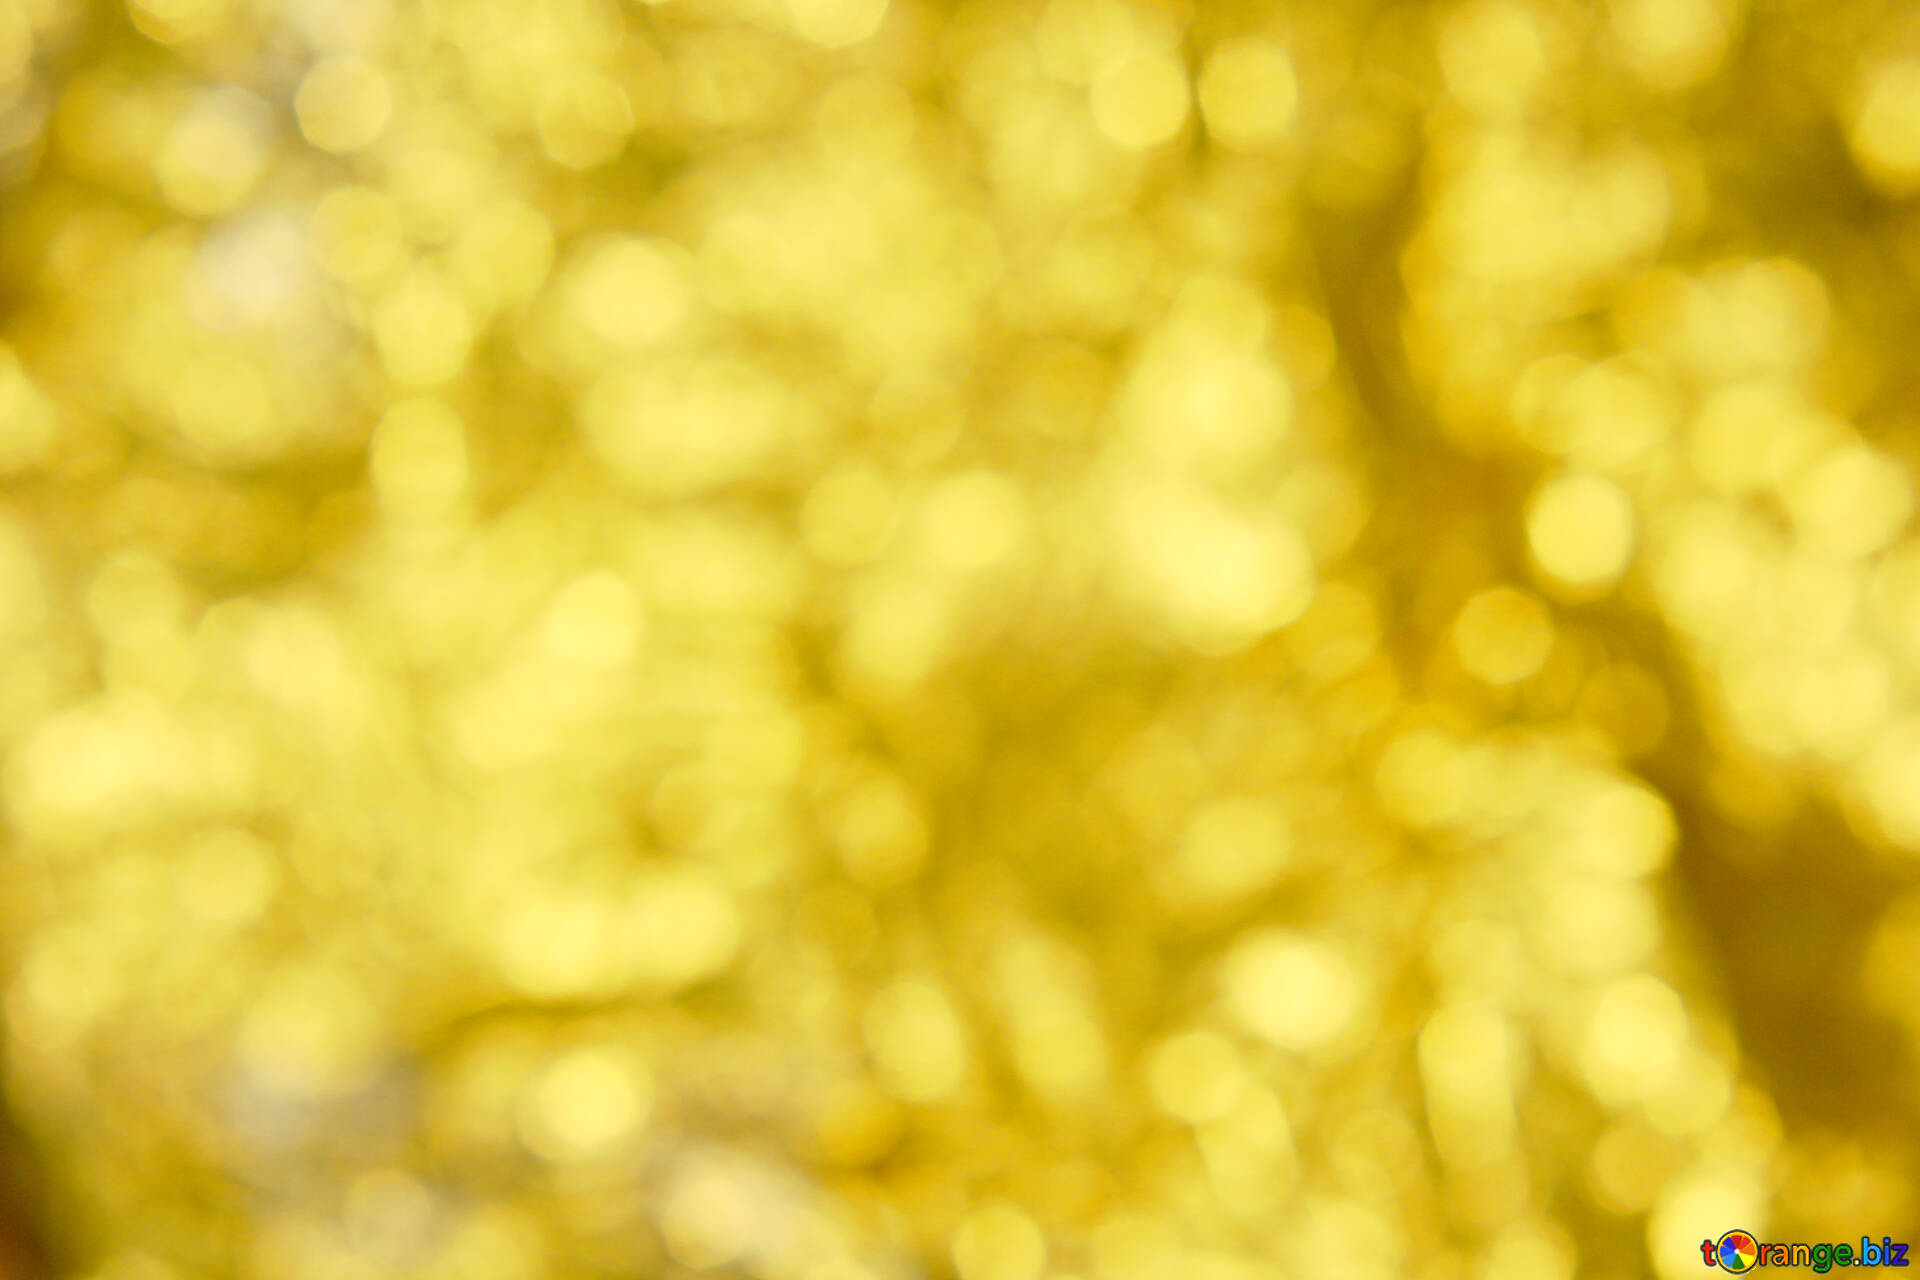 download free image shiny golden new year background in hd wallpaper size 1920px